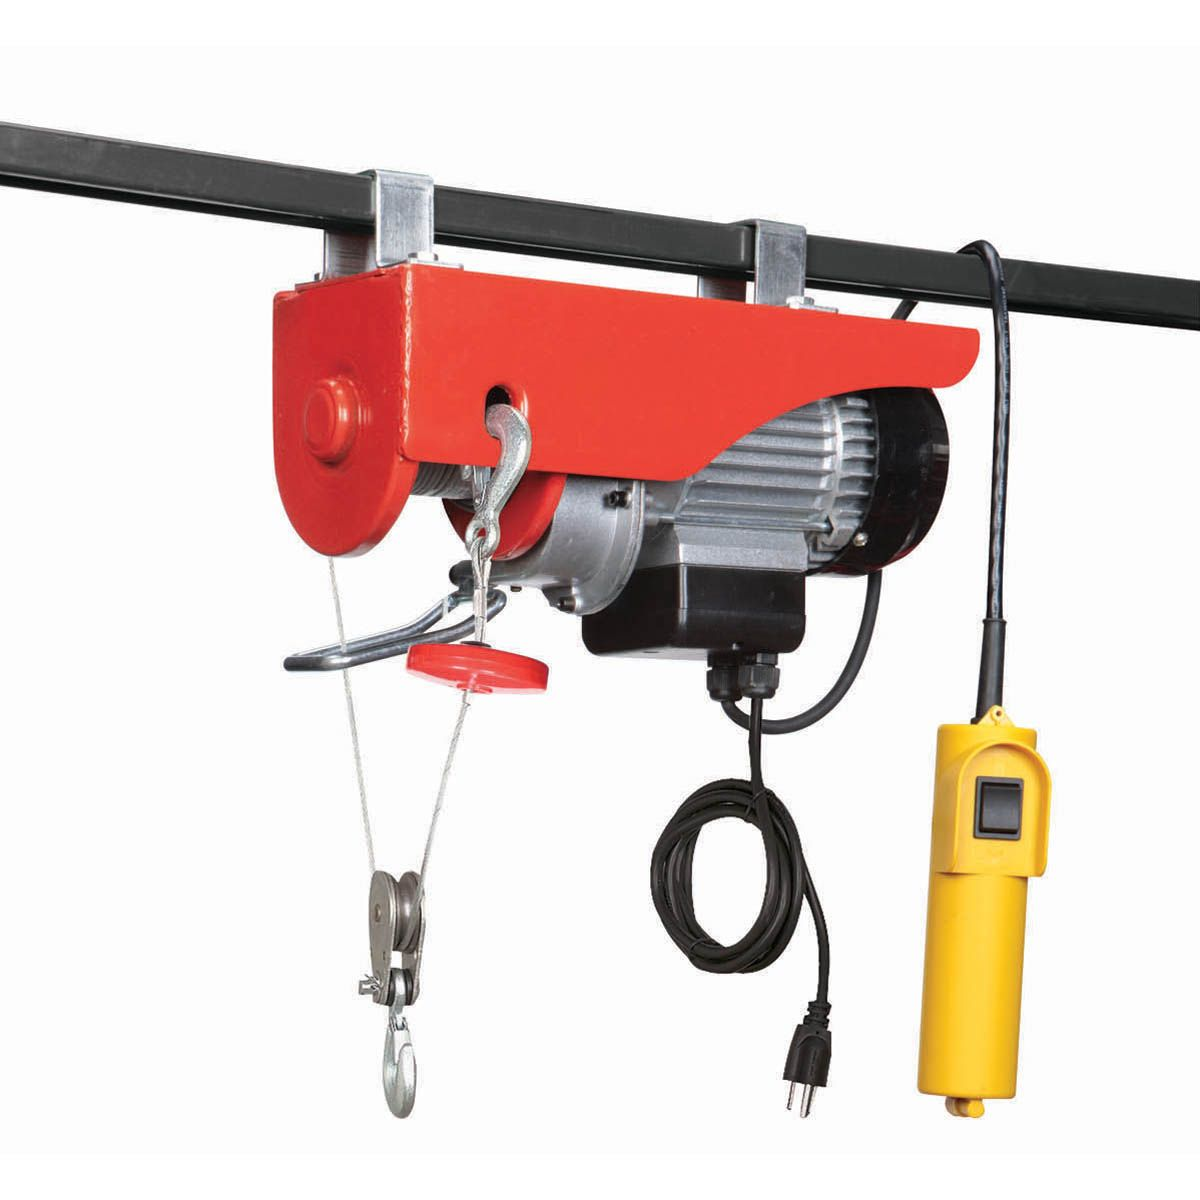 440 lb. Electric Hoist with Remote Control Garage lift